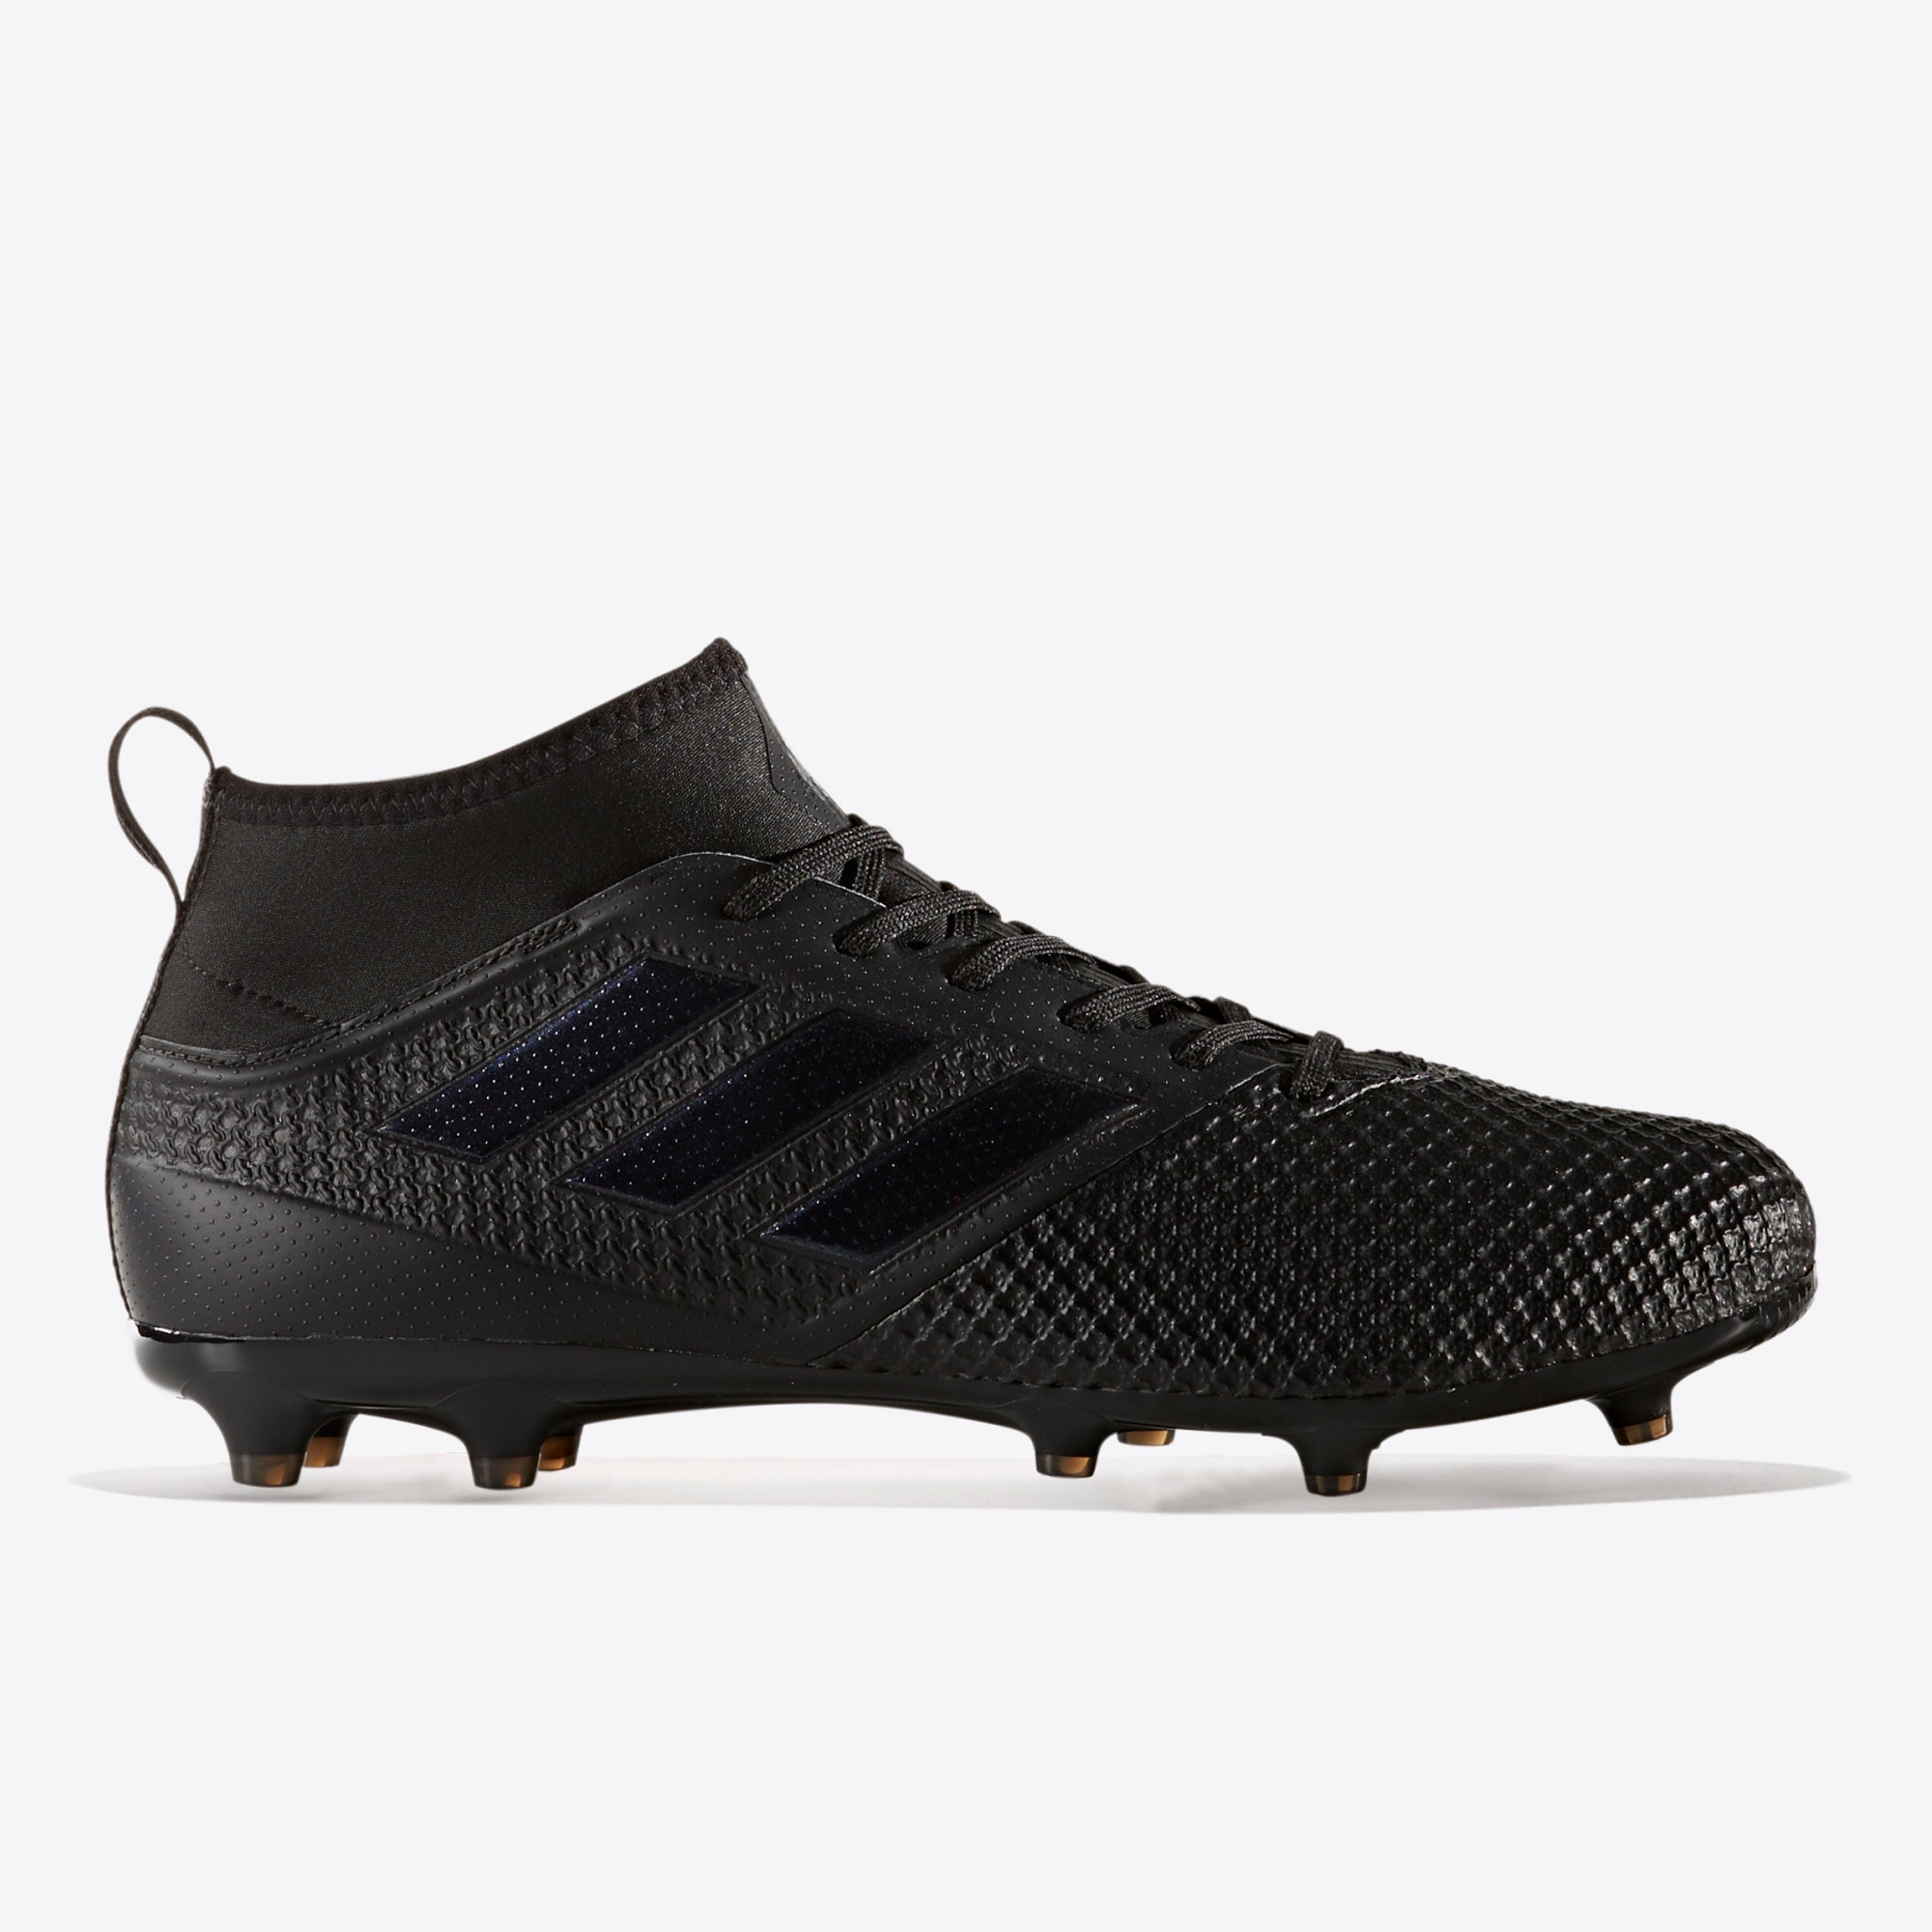 Image of adidas Ace 17.3 Firm Ground Football Boots - Core Black/Core Black/Uti